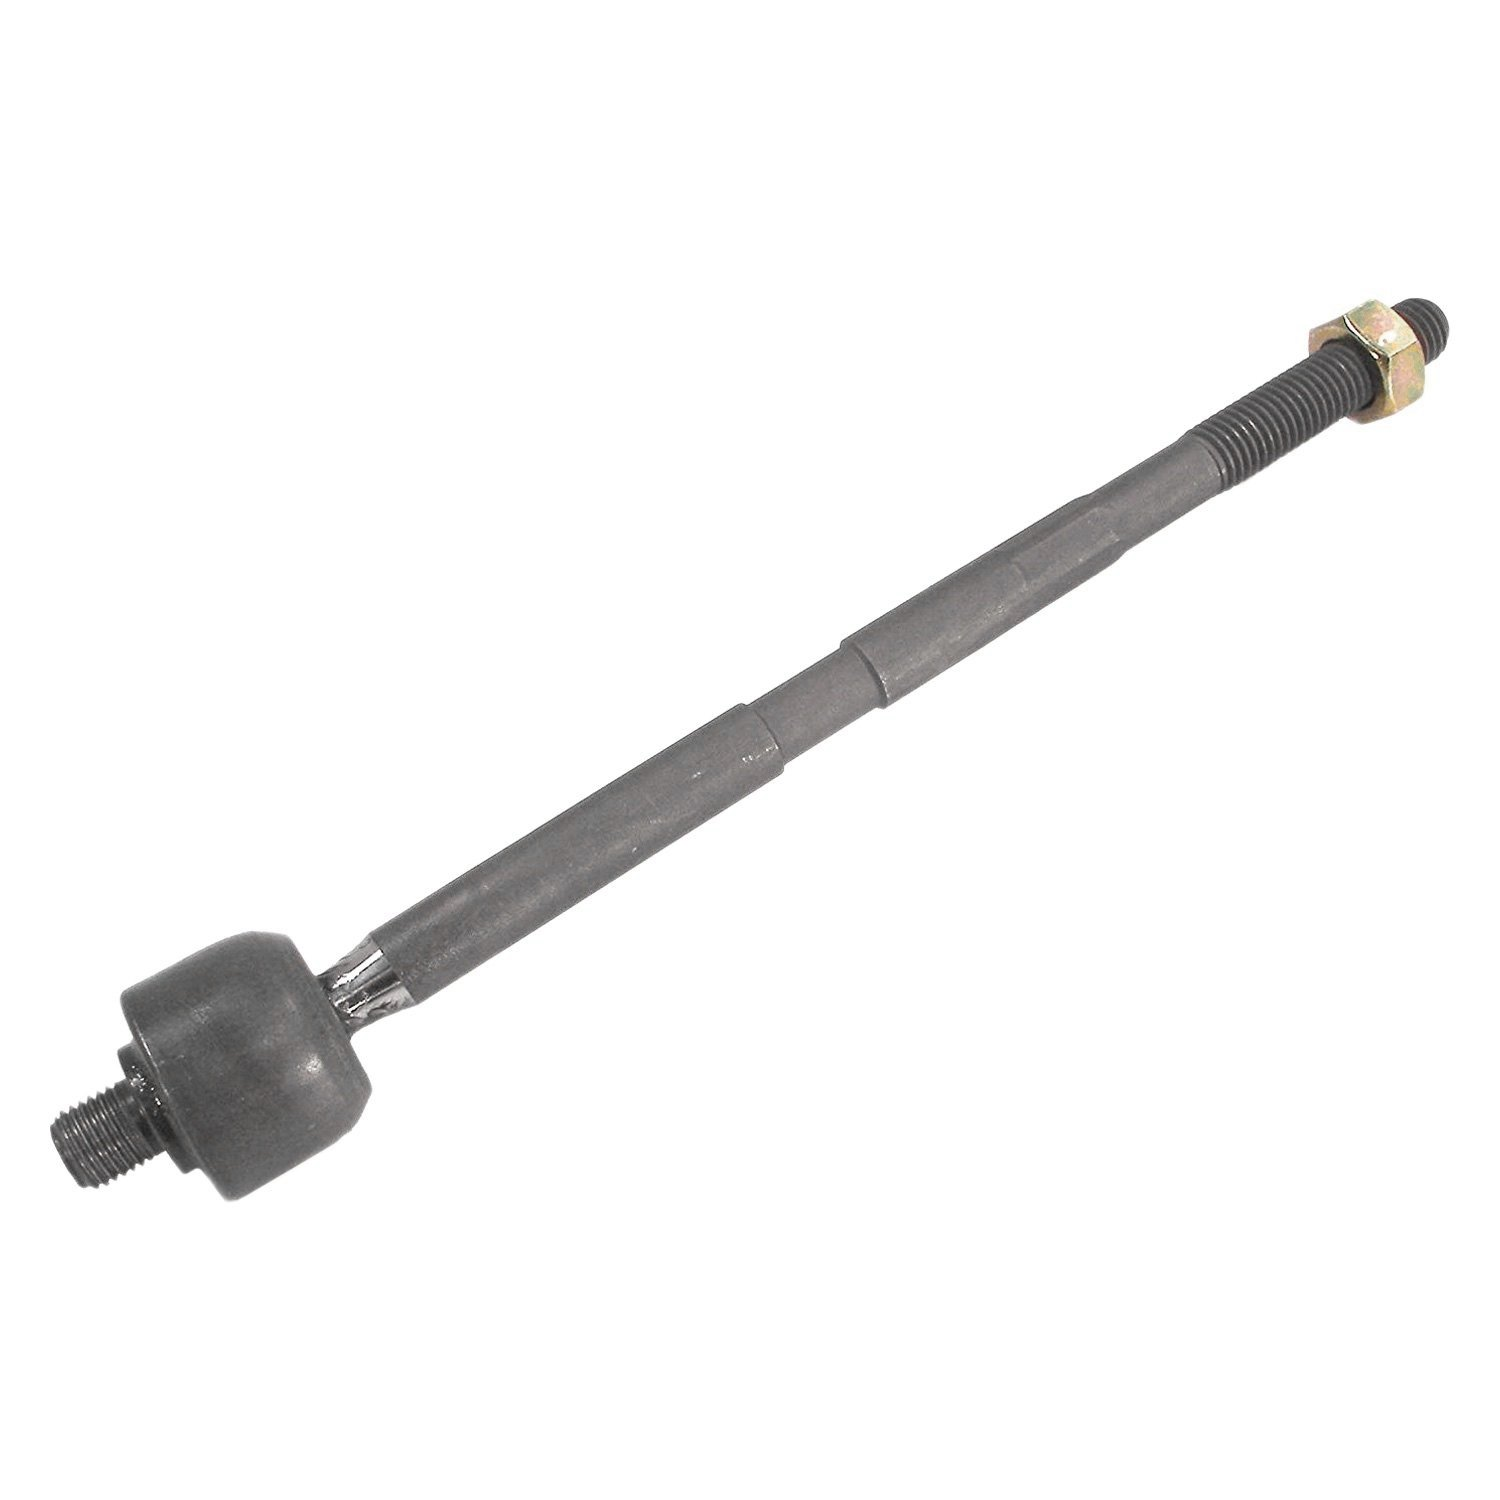 ingalls engineering volvo 240 1990 tie rod end. Black Bedroom Furniture Sets. Home Design Ideas